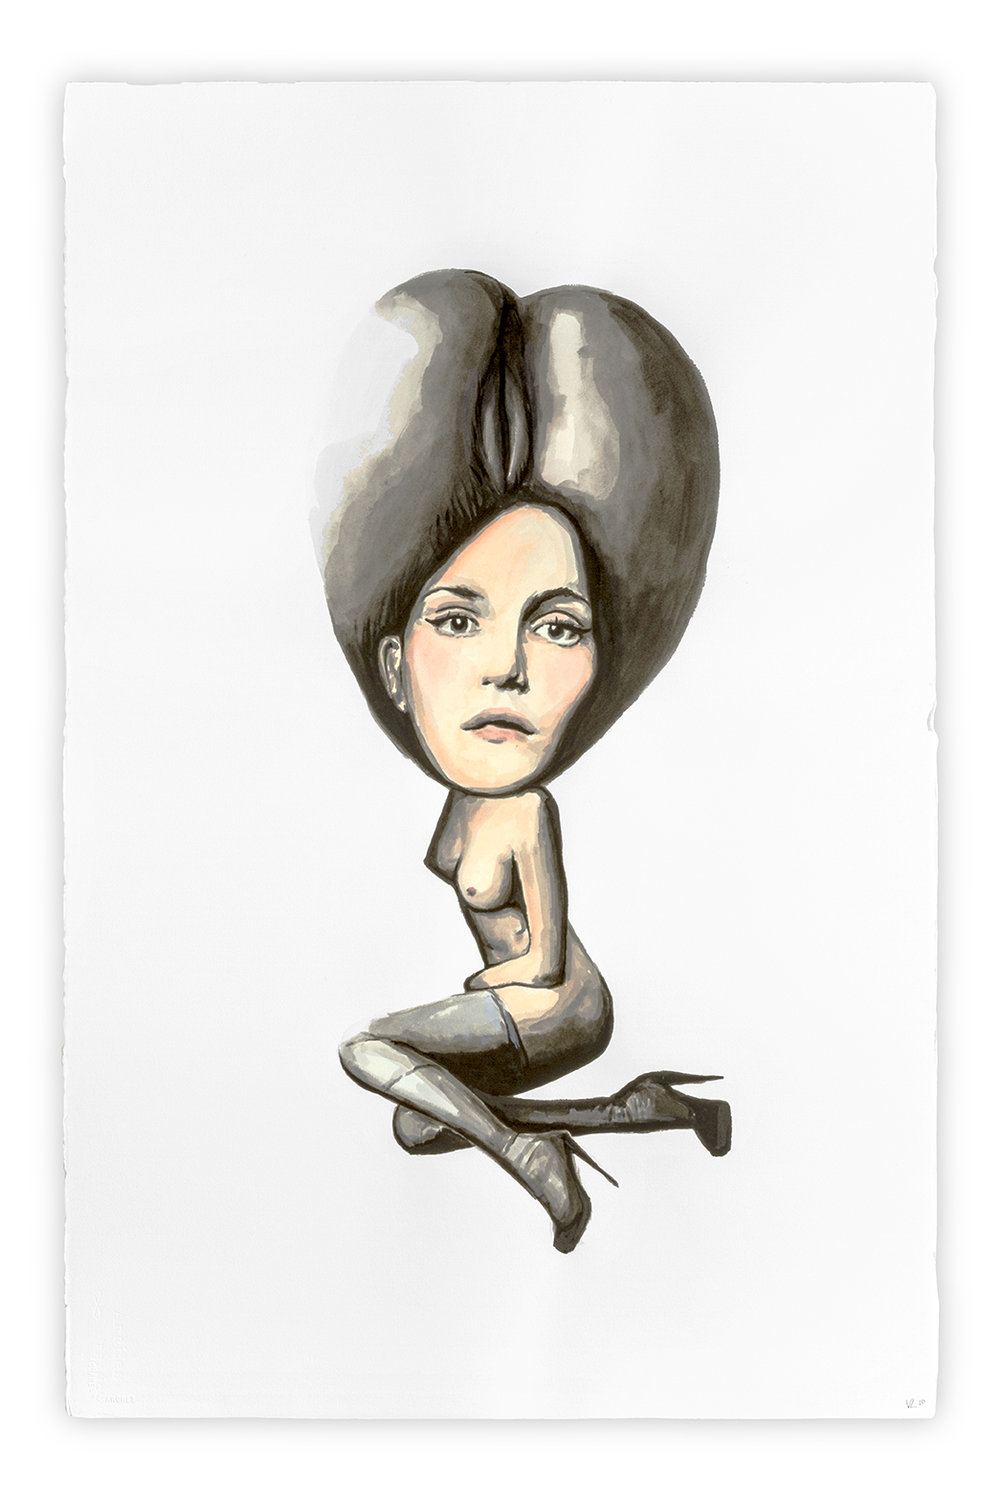 Preciosilla   Vanessa Lodigiani | Indian Ink and gouache on Arches paper | 102x66 cm | New York 2010